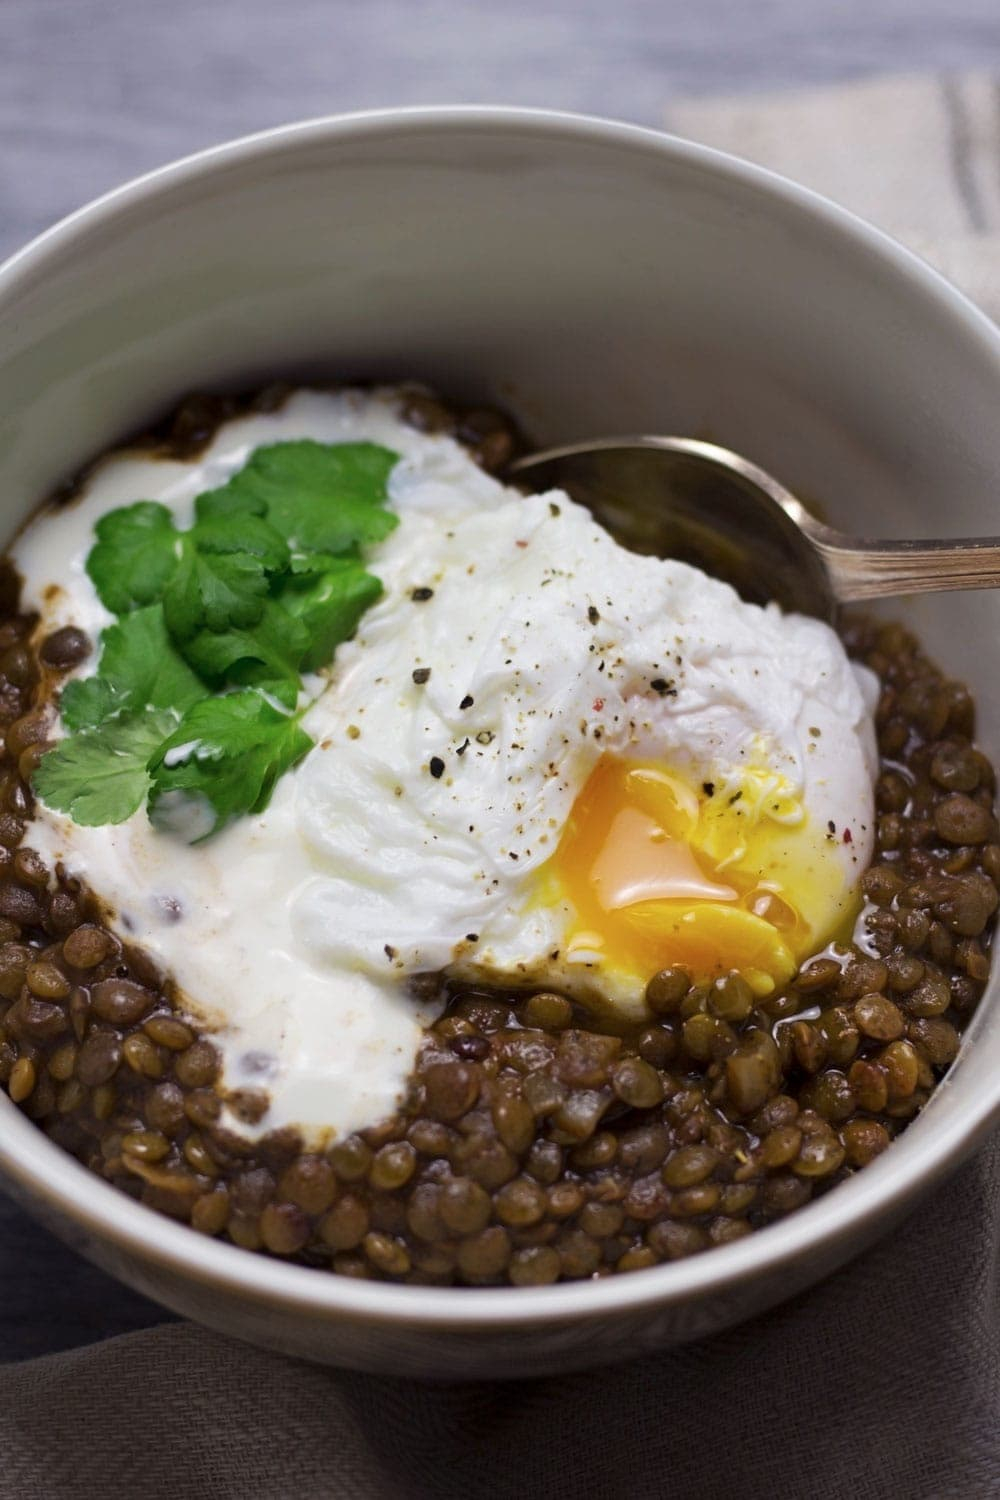 These berbere lentils are healthy, filling and delicious. With a poached egg and Greek yoghurt on top they're a complete meal!